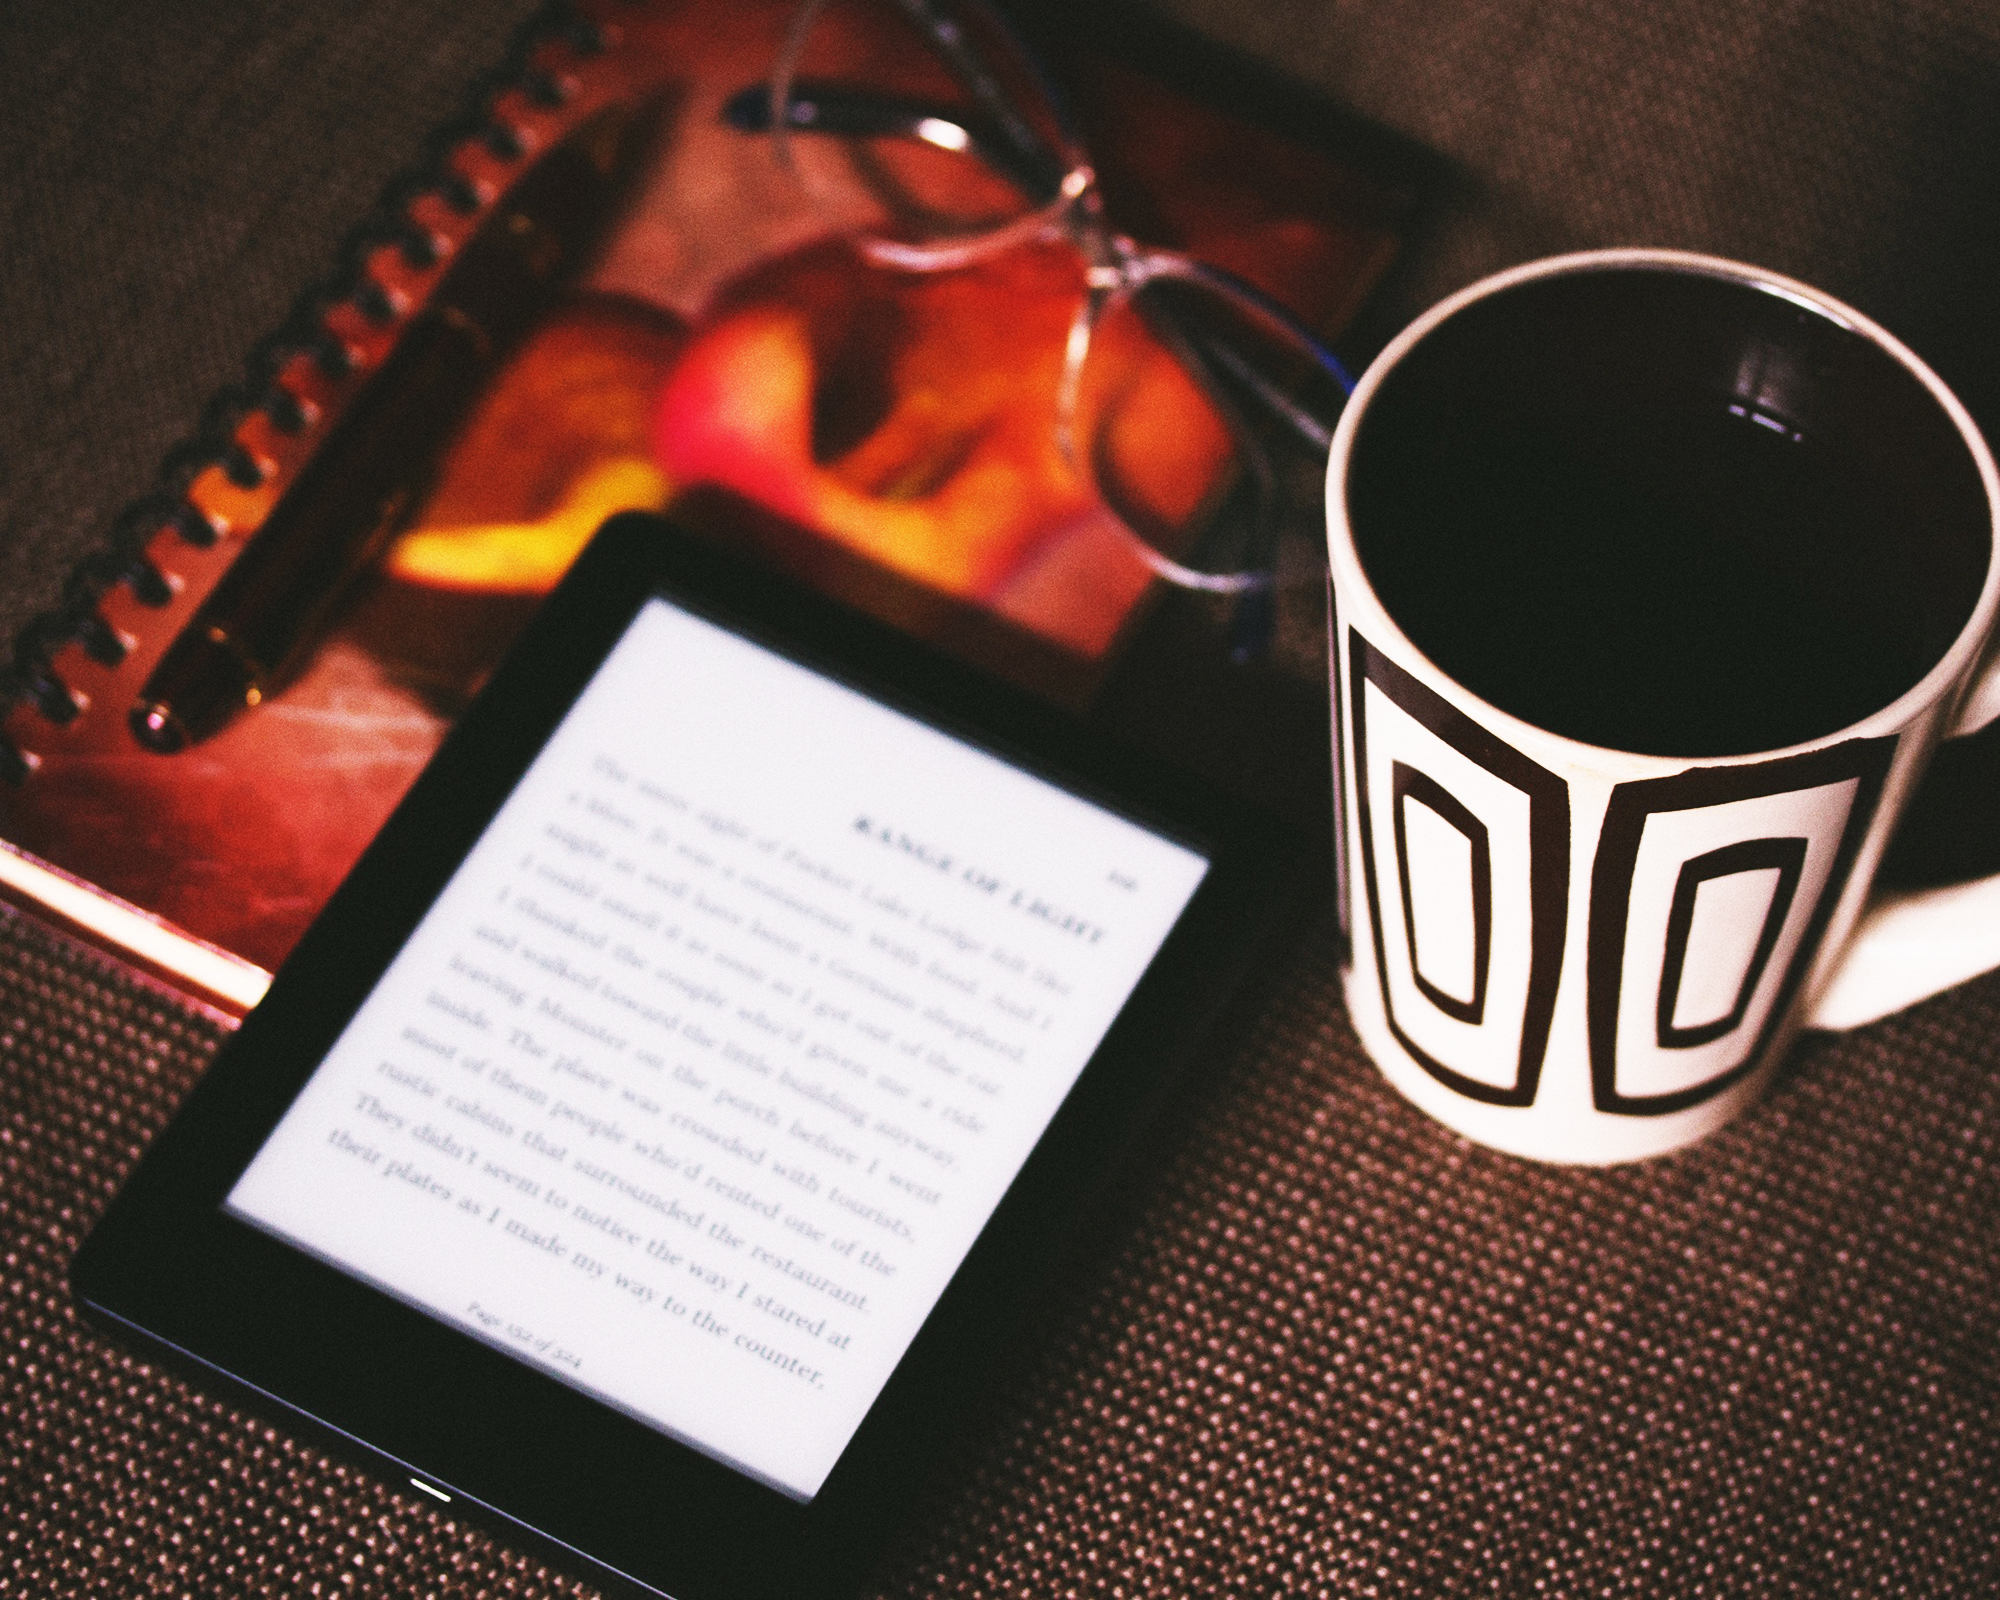 Which Digital Publishing Platform is Best? Part 2 – Nook and iBooks